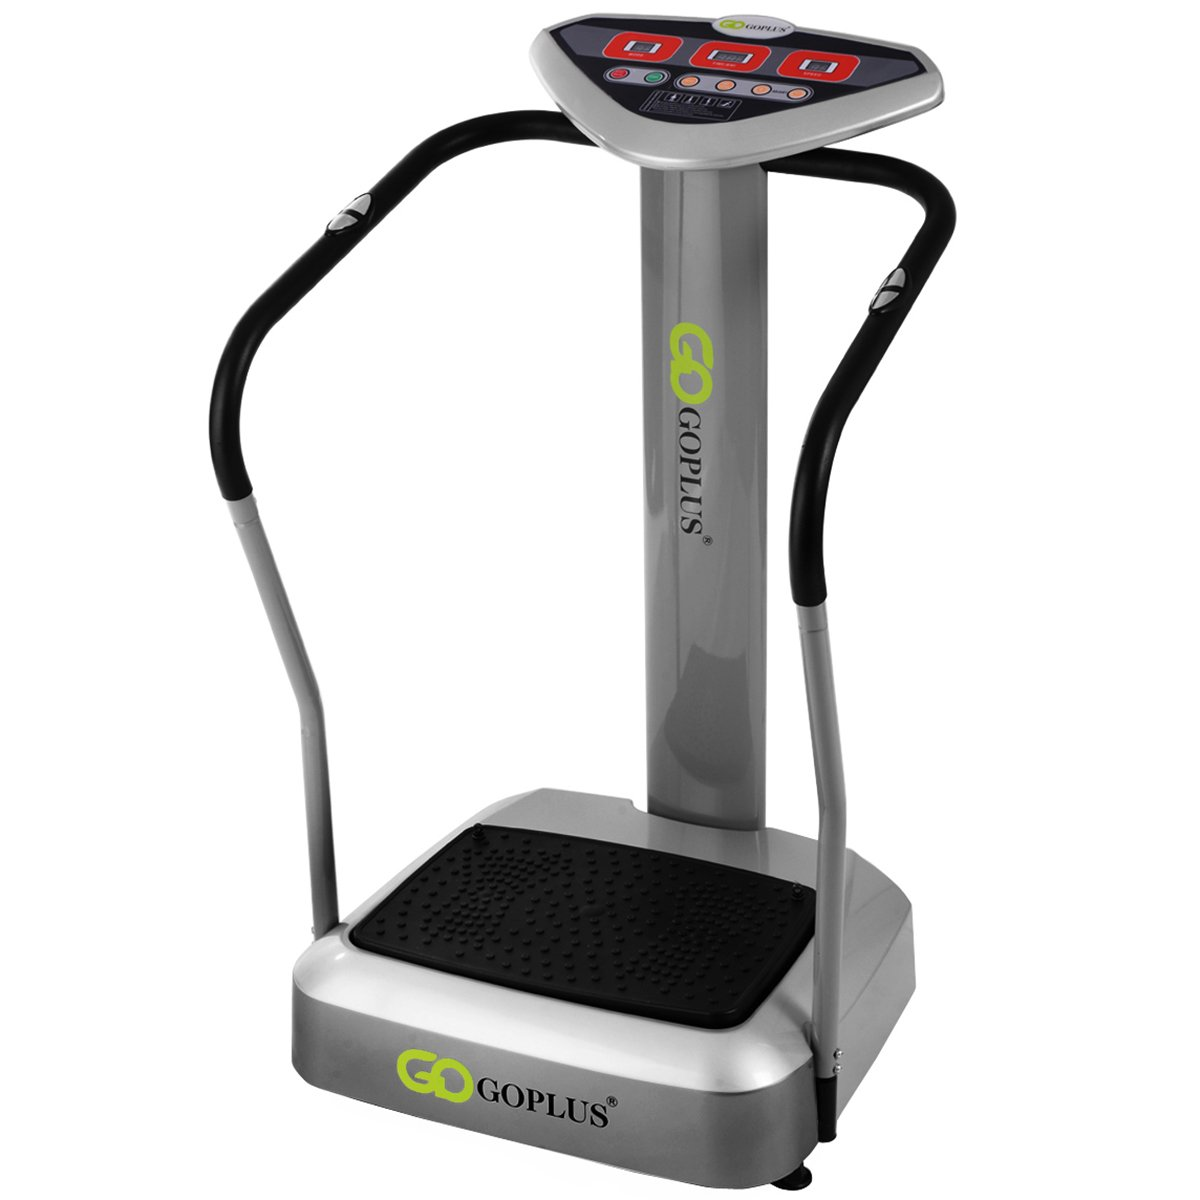 Goplus Full Body Vibration Platform Machine Crazy Fit Massage Fitness Slim, Gray by Goplus